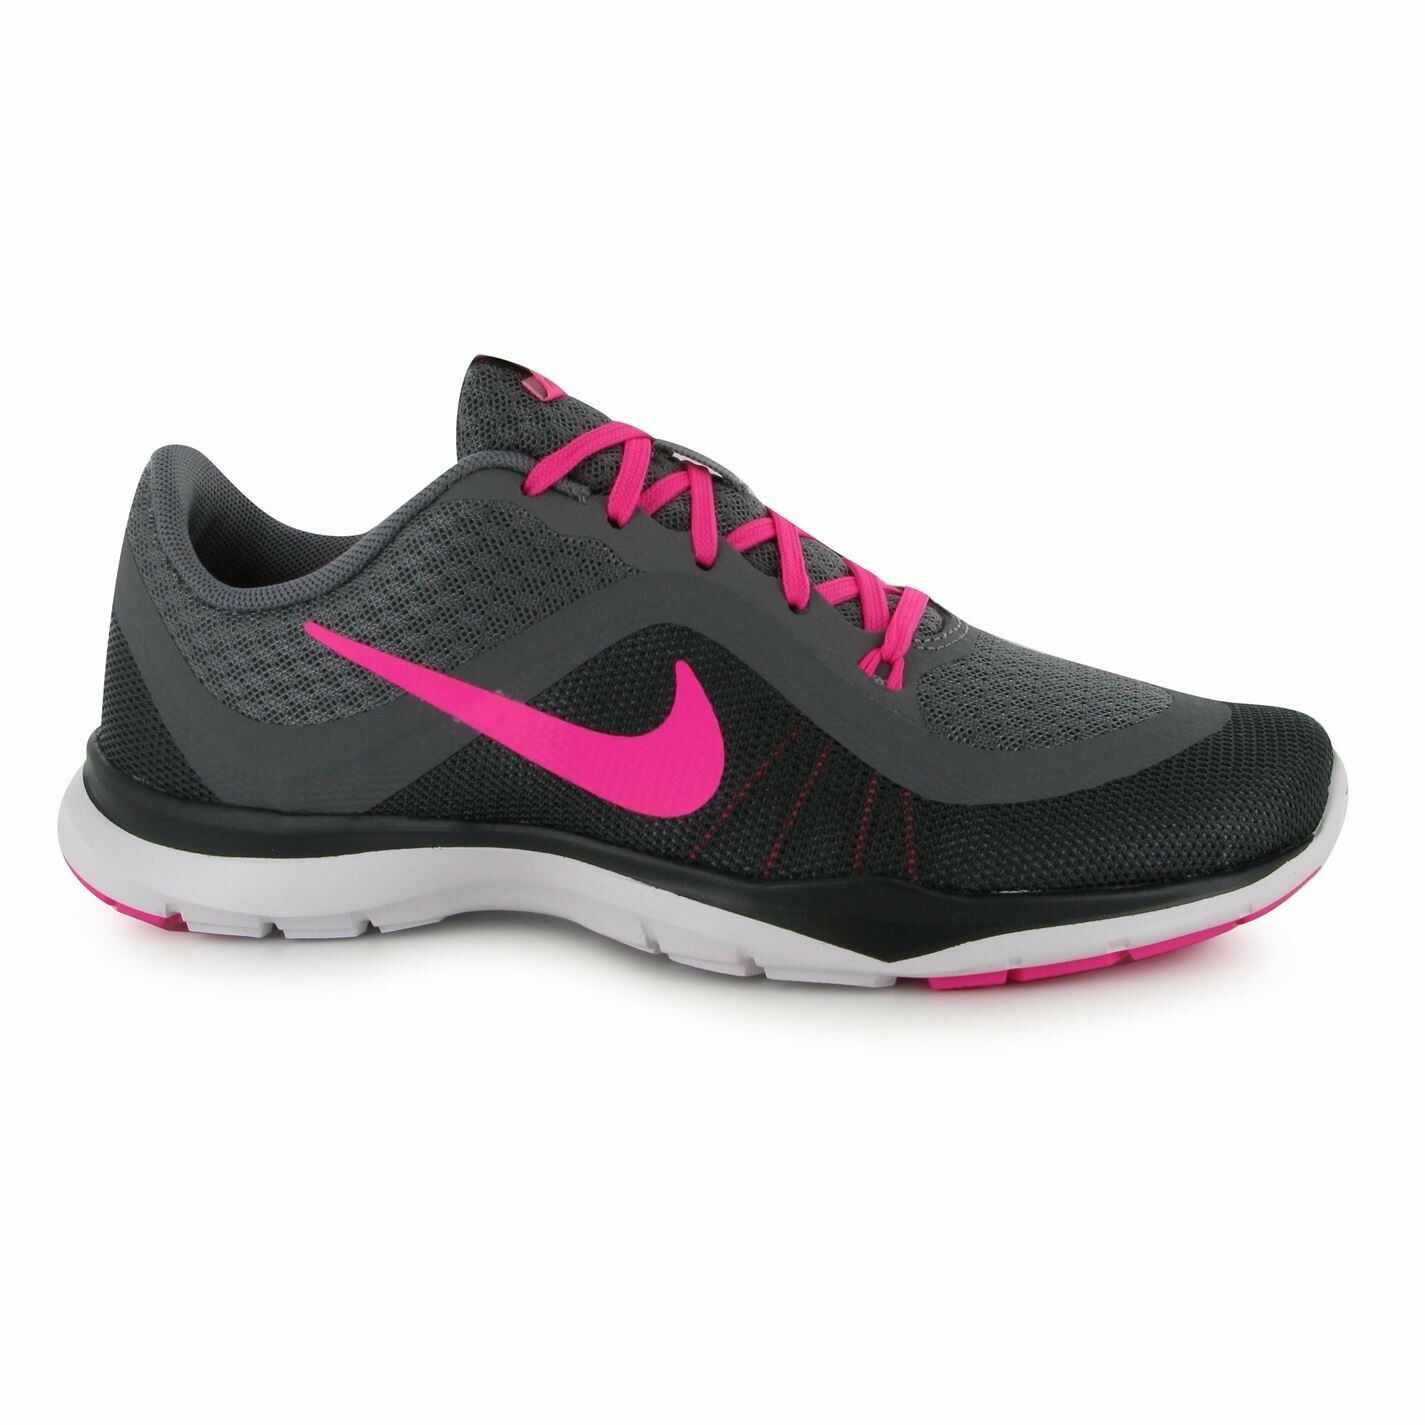 Mujer Nike Flex Trainer / 6 Gris / Rosa / Trainer Negro Rare Limited Edition Wild Casual Shoes 93eb72